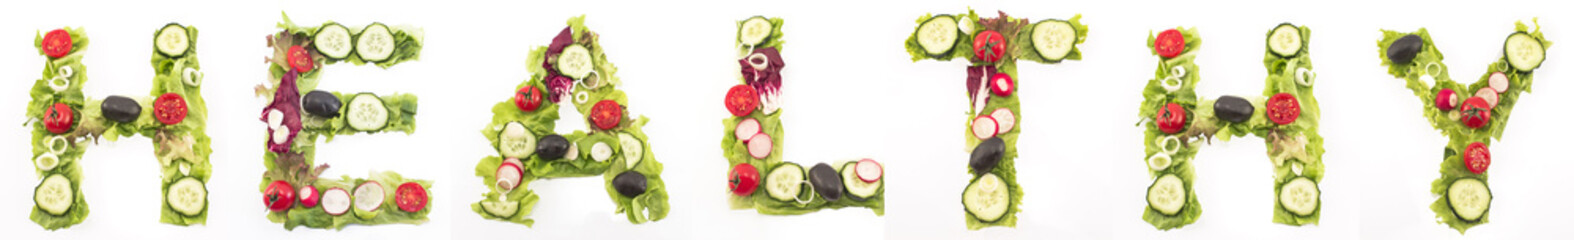 Word healthy made of salad